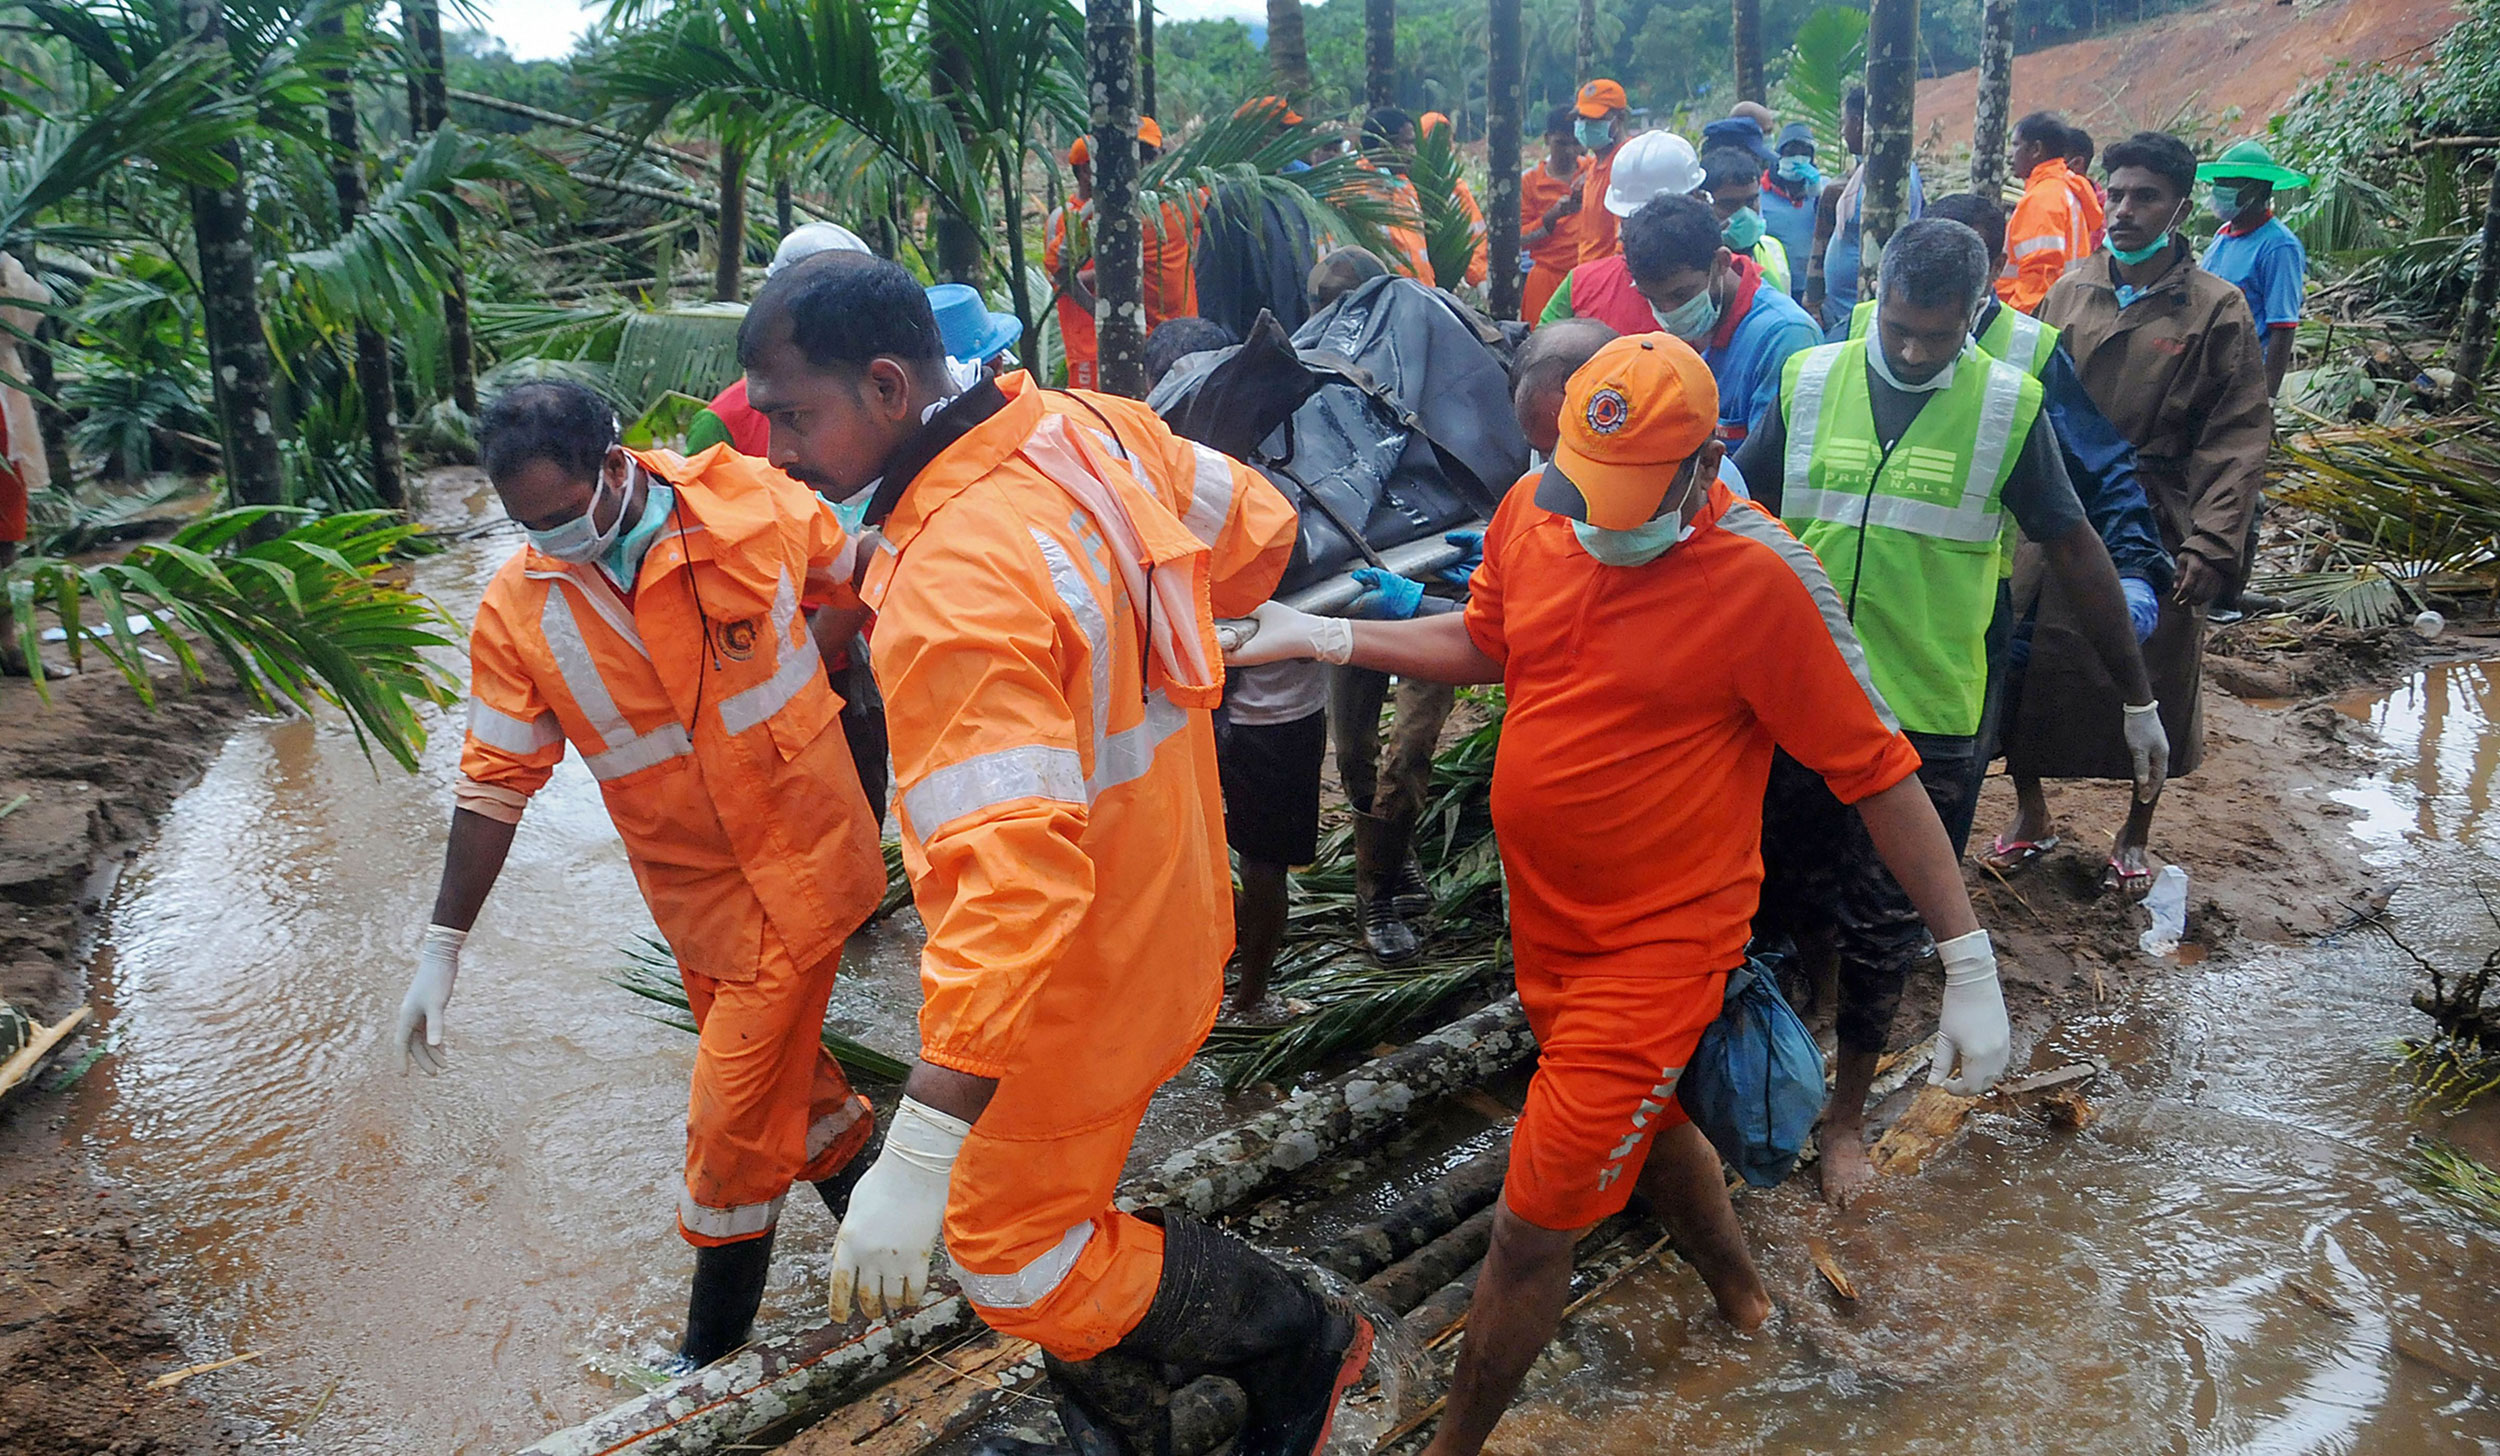 Rescue workers recover a body from a site of the landslide at Kavalappara in Malappuram district on August 14, 2019.